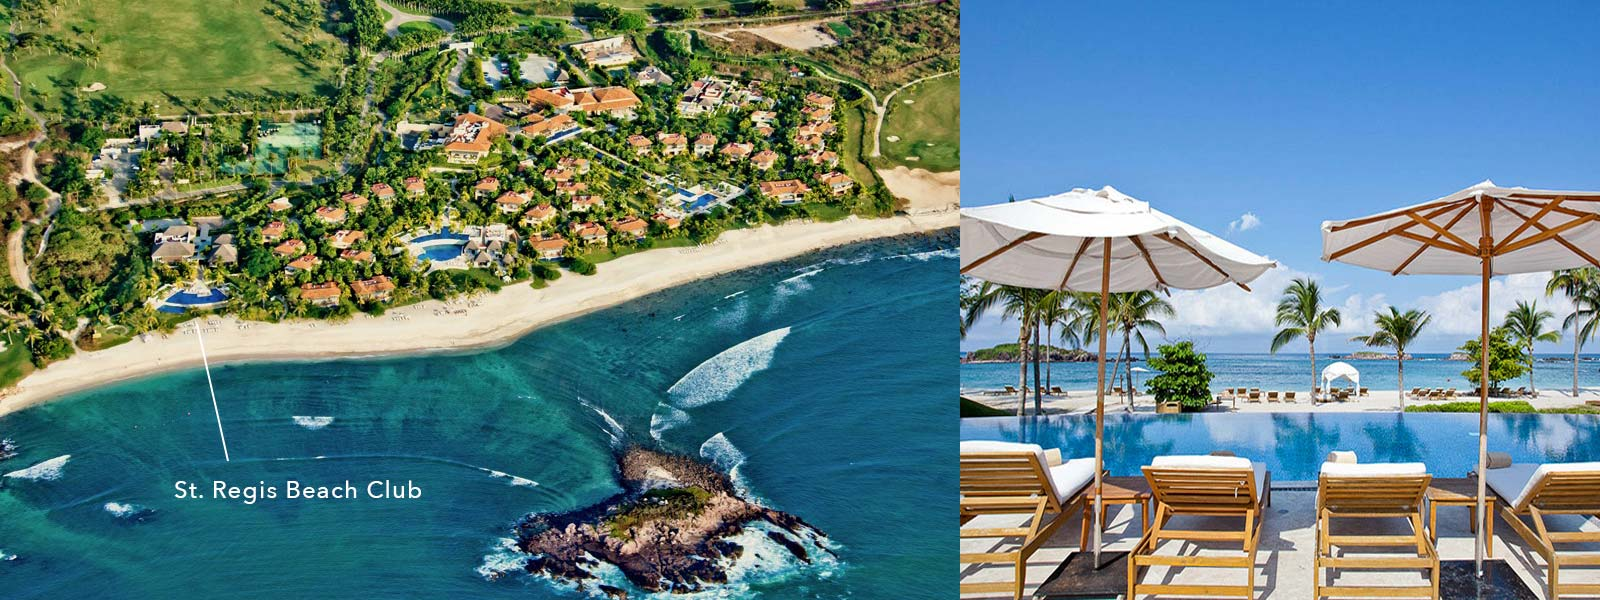 The St Regis Beach Club At Punta Mita Resort Riviera Nayarit Mexico